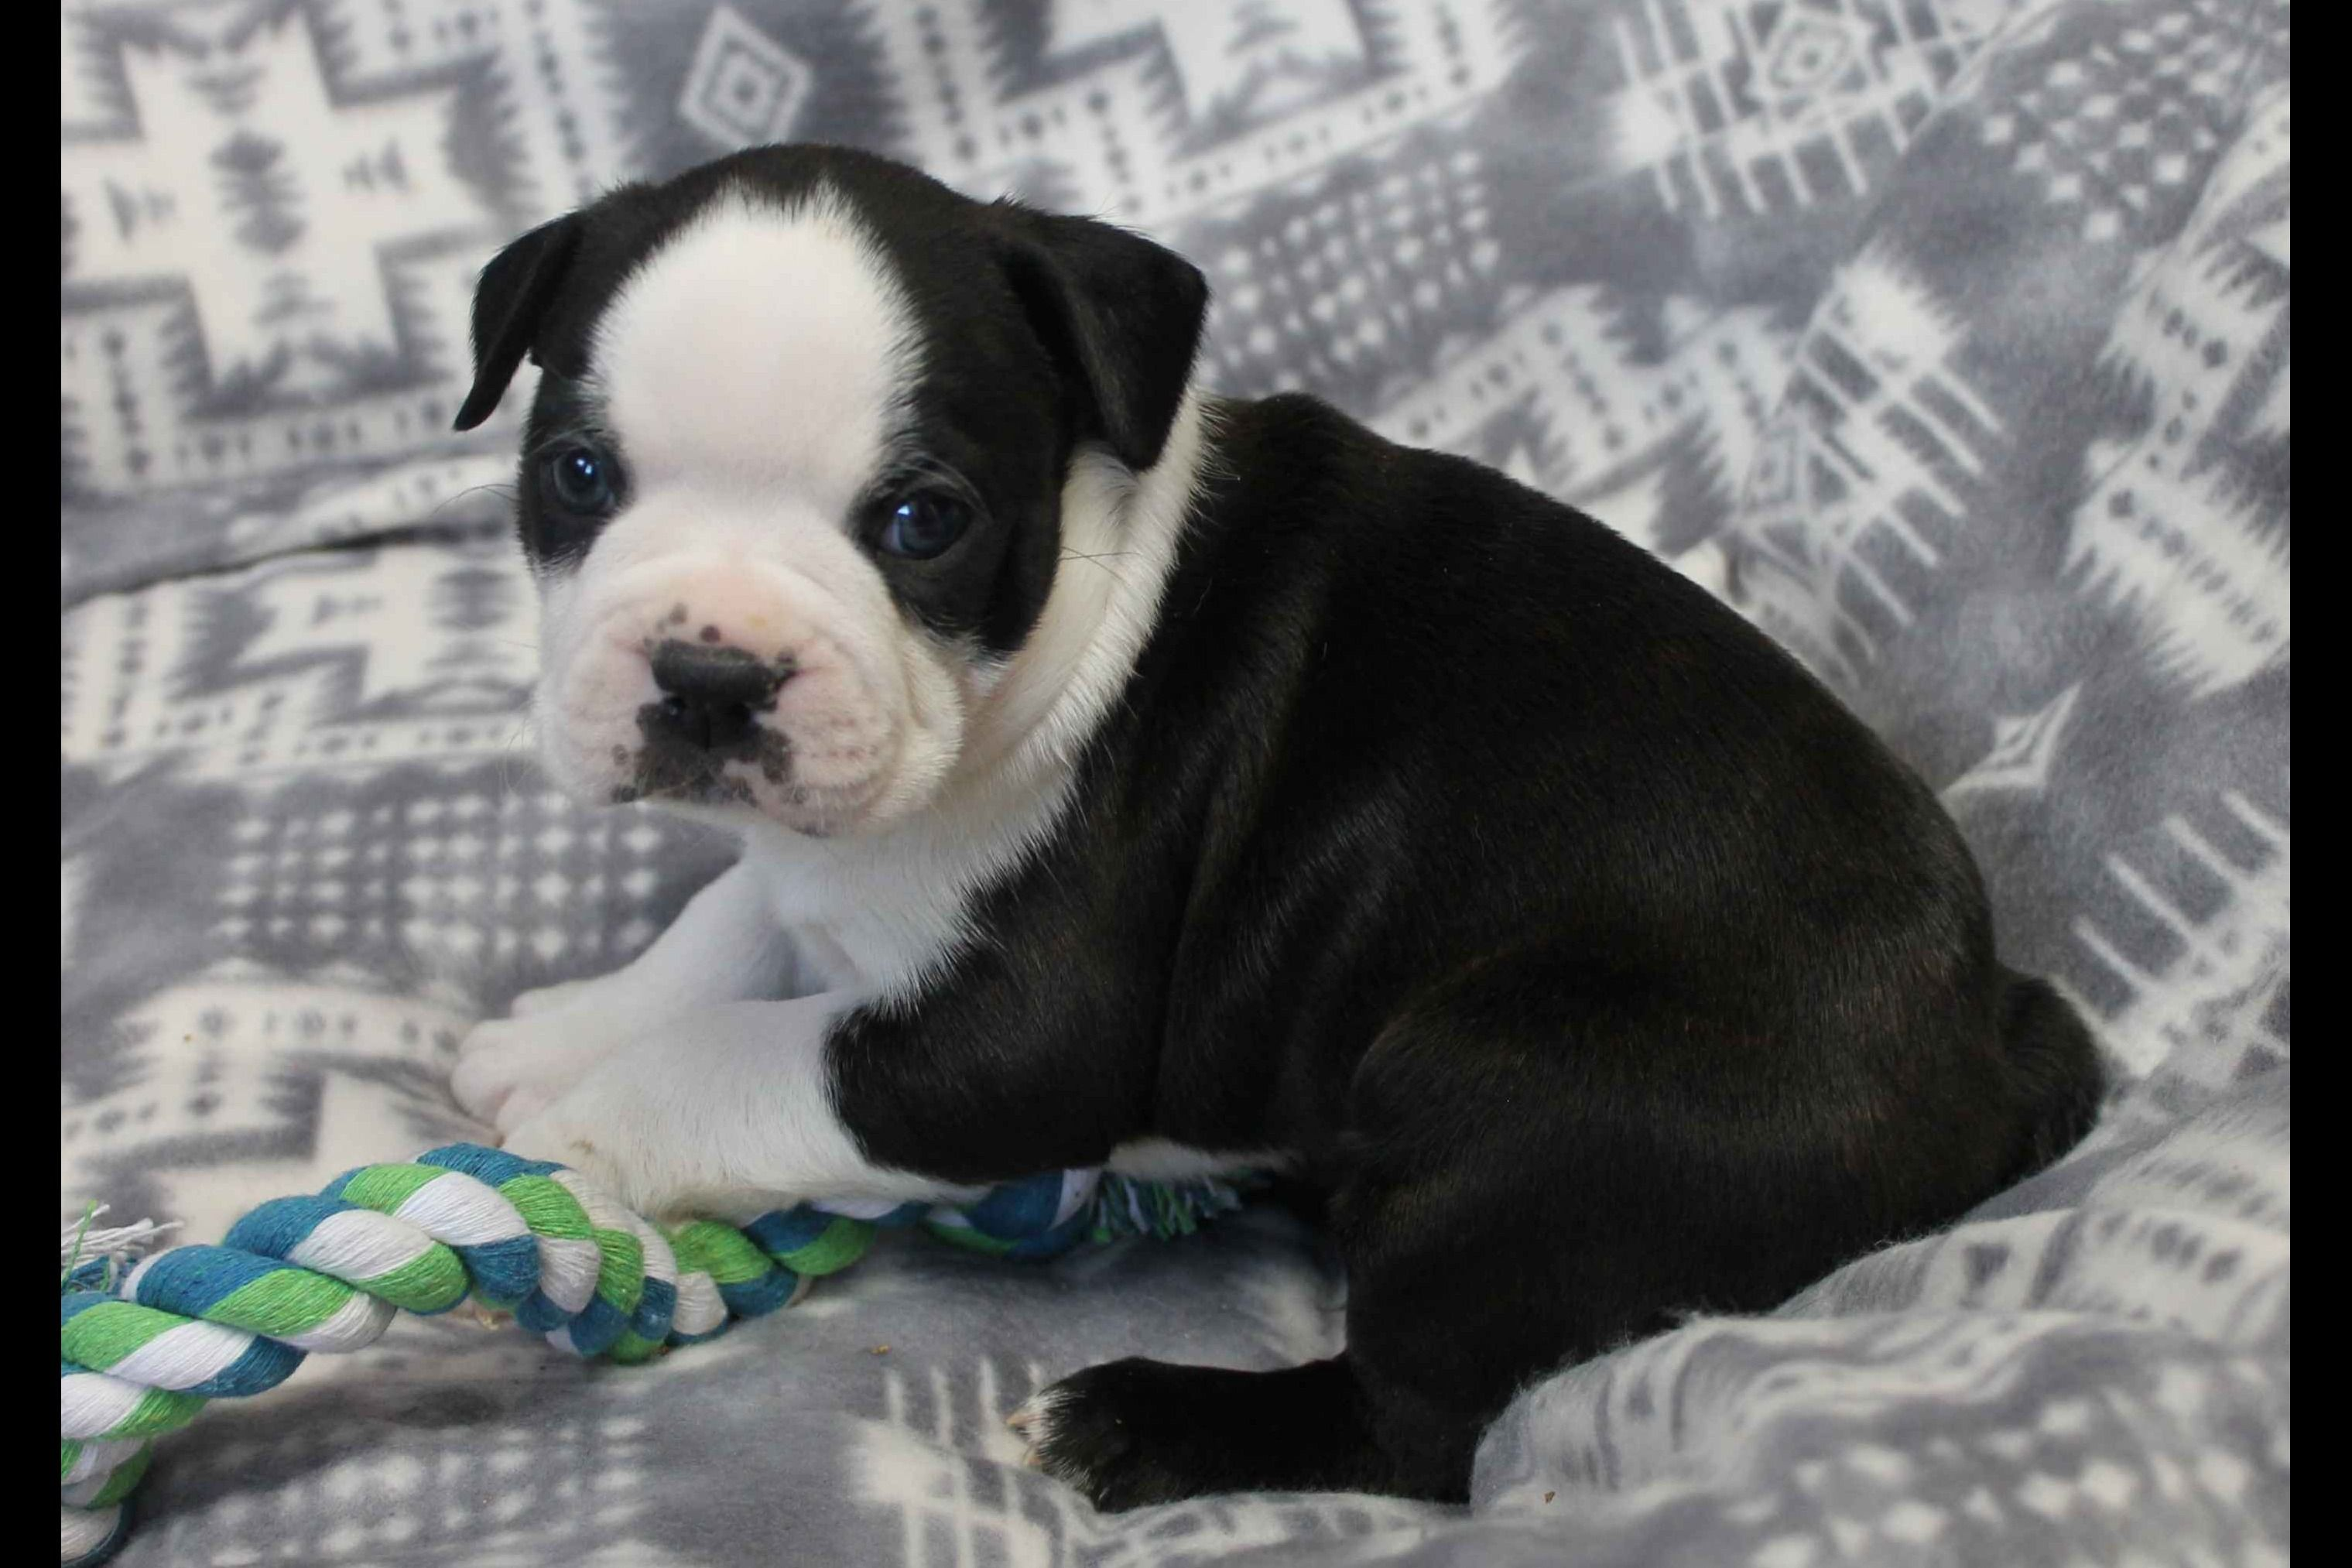 Keller S Farm Has Boston Terrier Puppies For Sale In Cabool Mo On